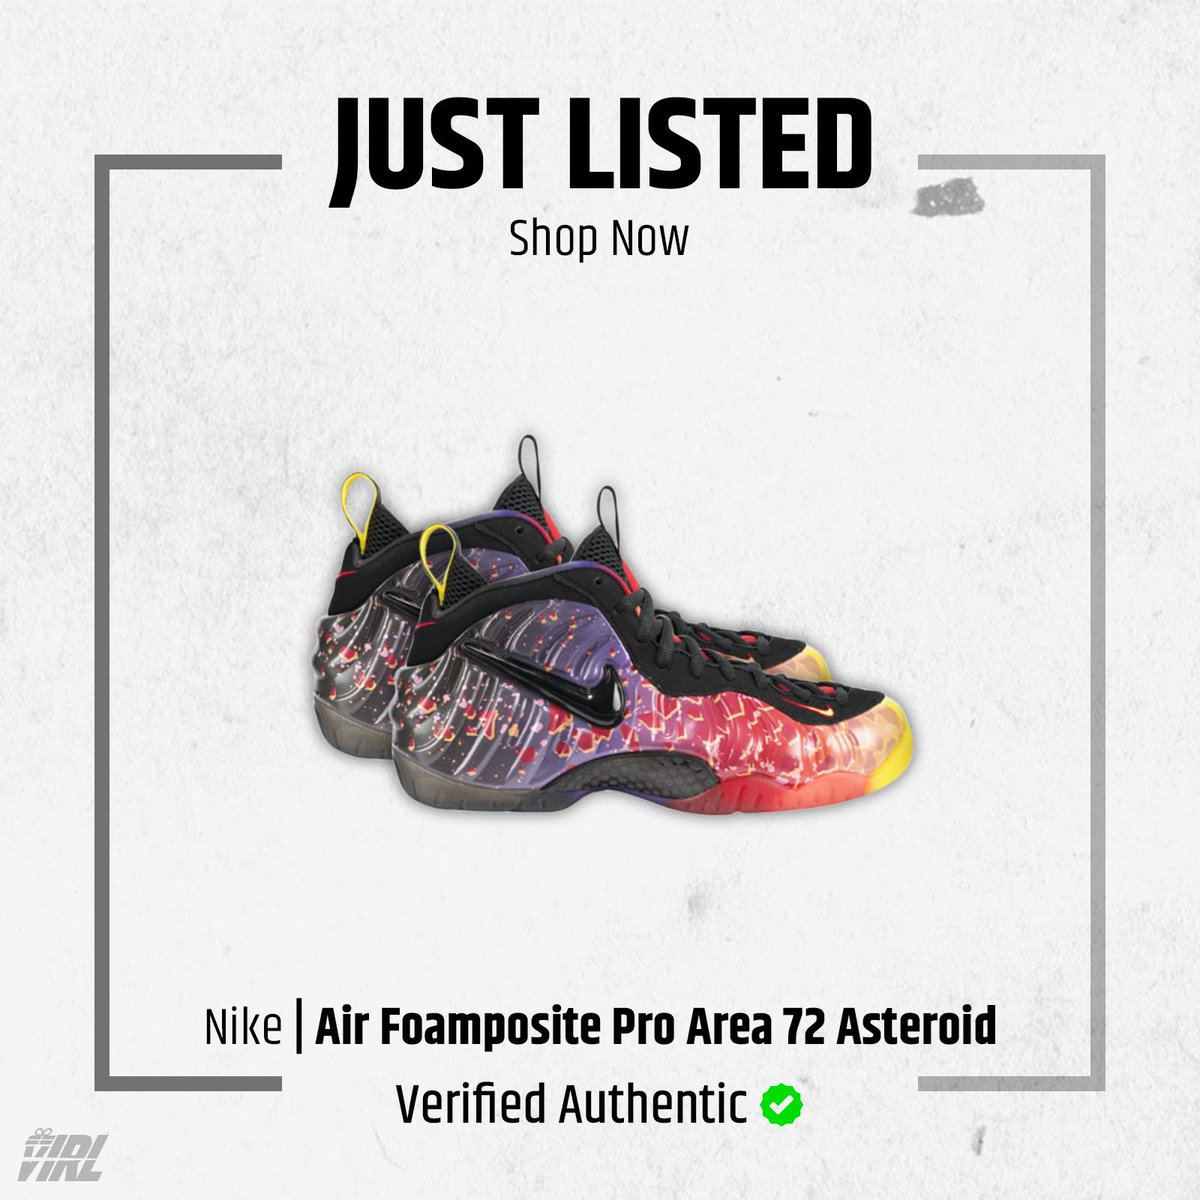 031813652e1 These nike air foamposite pro area astroids are the latest user submitted  go virl inspect in